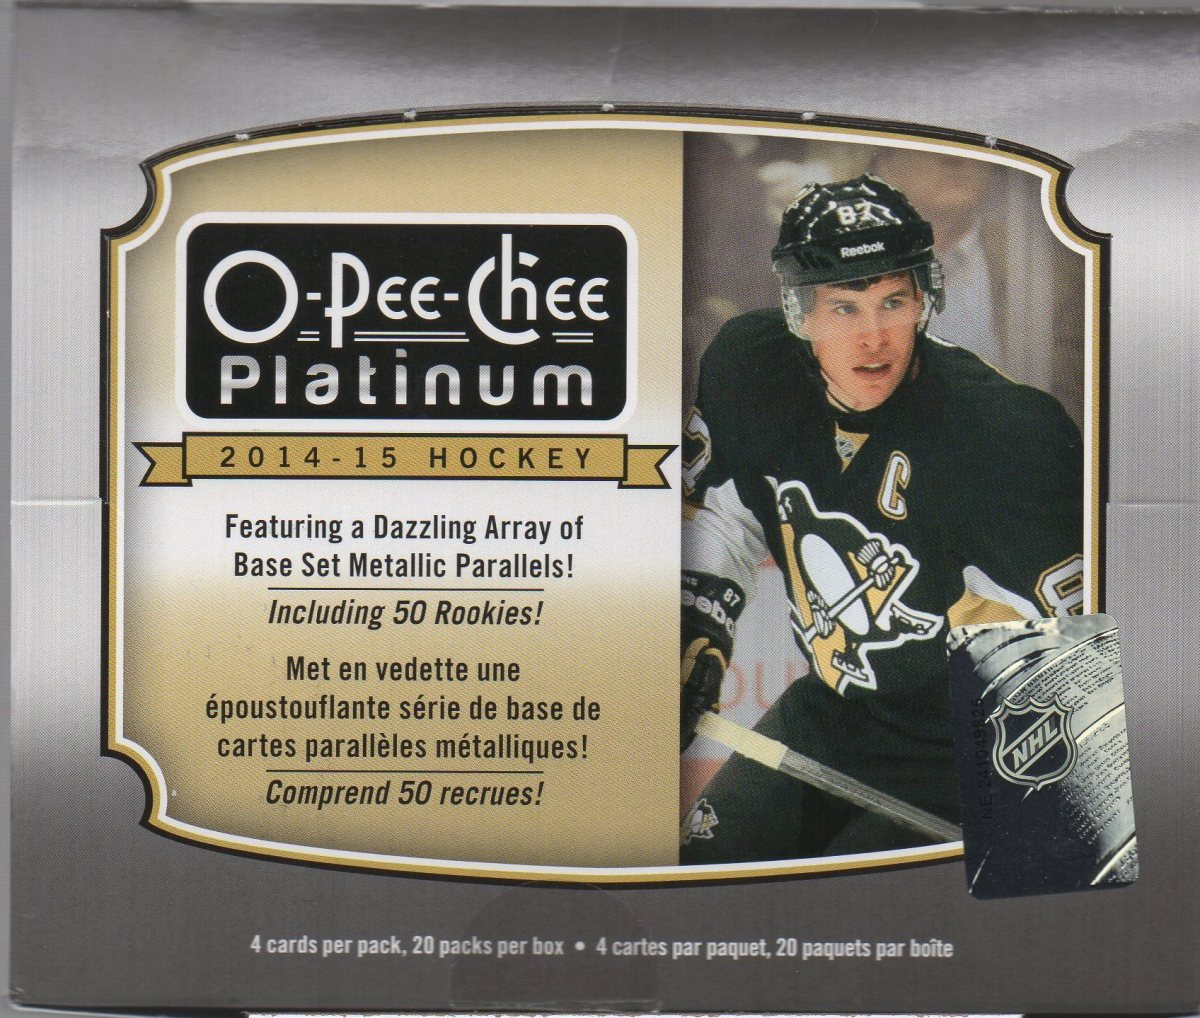 BOX BREAK: 2 Boxes of 2014-15 O-Pee-Chee Platinum Hockey